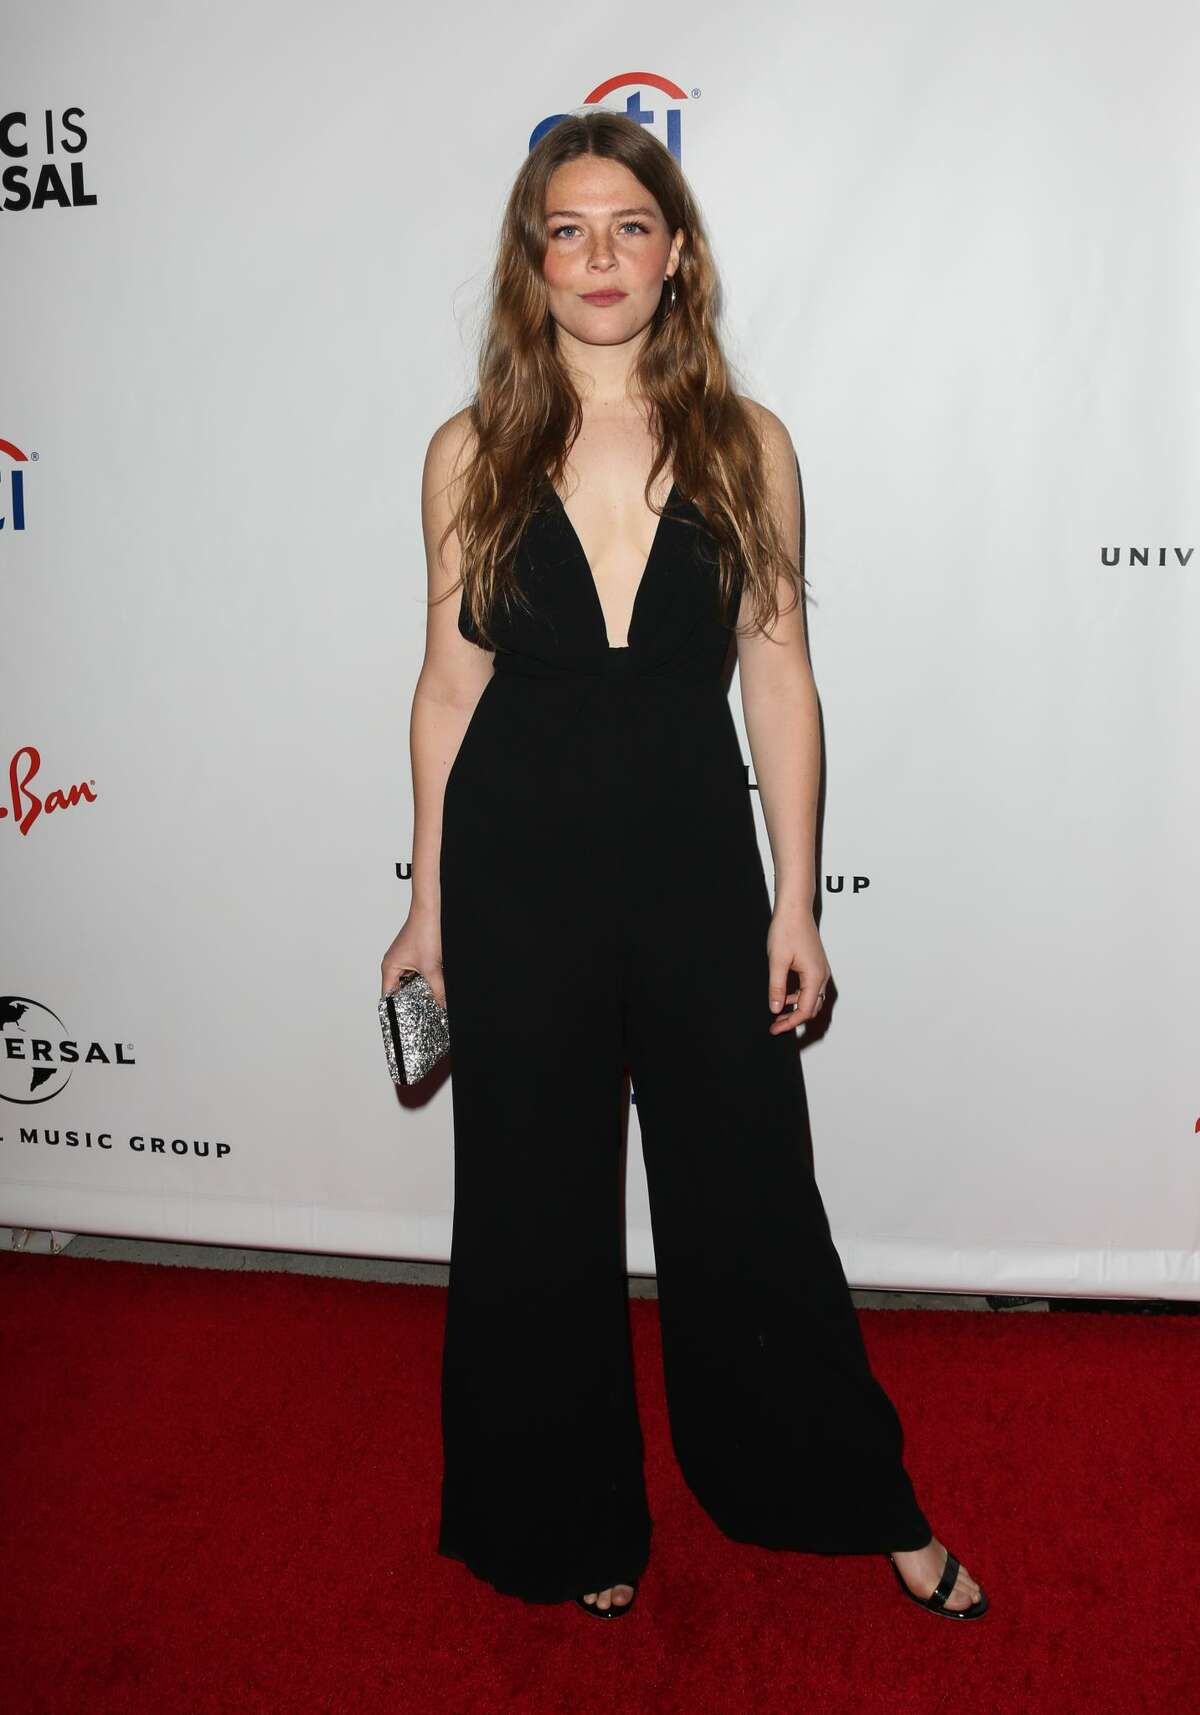 LOS ANGELES, CALIFORNIA - FEBRUARY 10: Singer Maggie Rogers attends the Universal Music Group's 2019 after party to celebrate The GRAMMYs at ROW DTLA on February 10, 2019 in Los Angeles, California. (Photo by Paul Archuleta/FilmMagic)